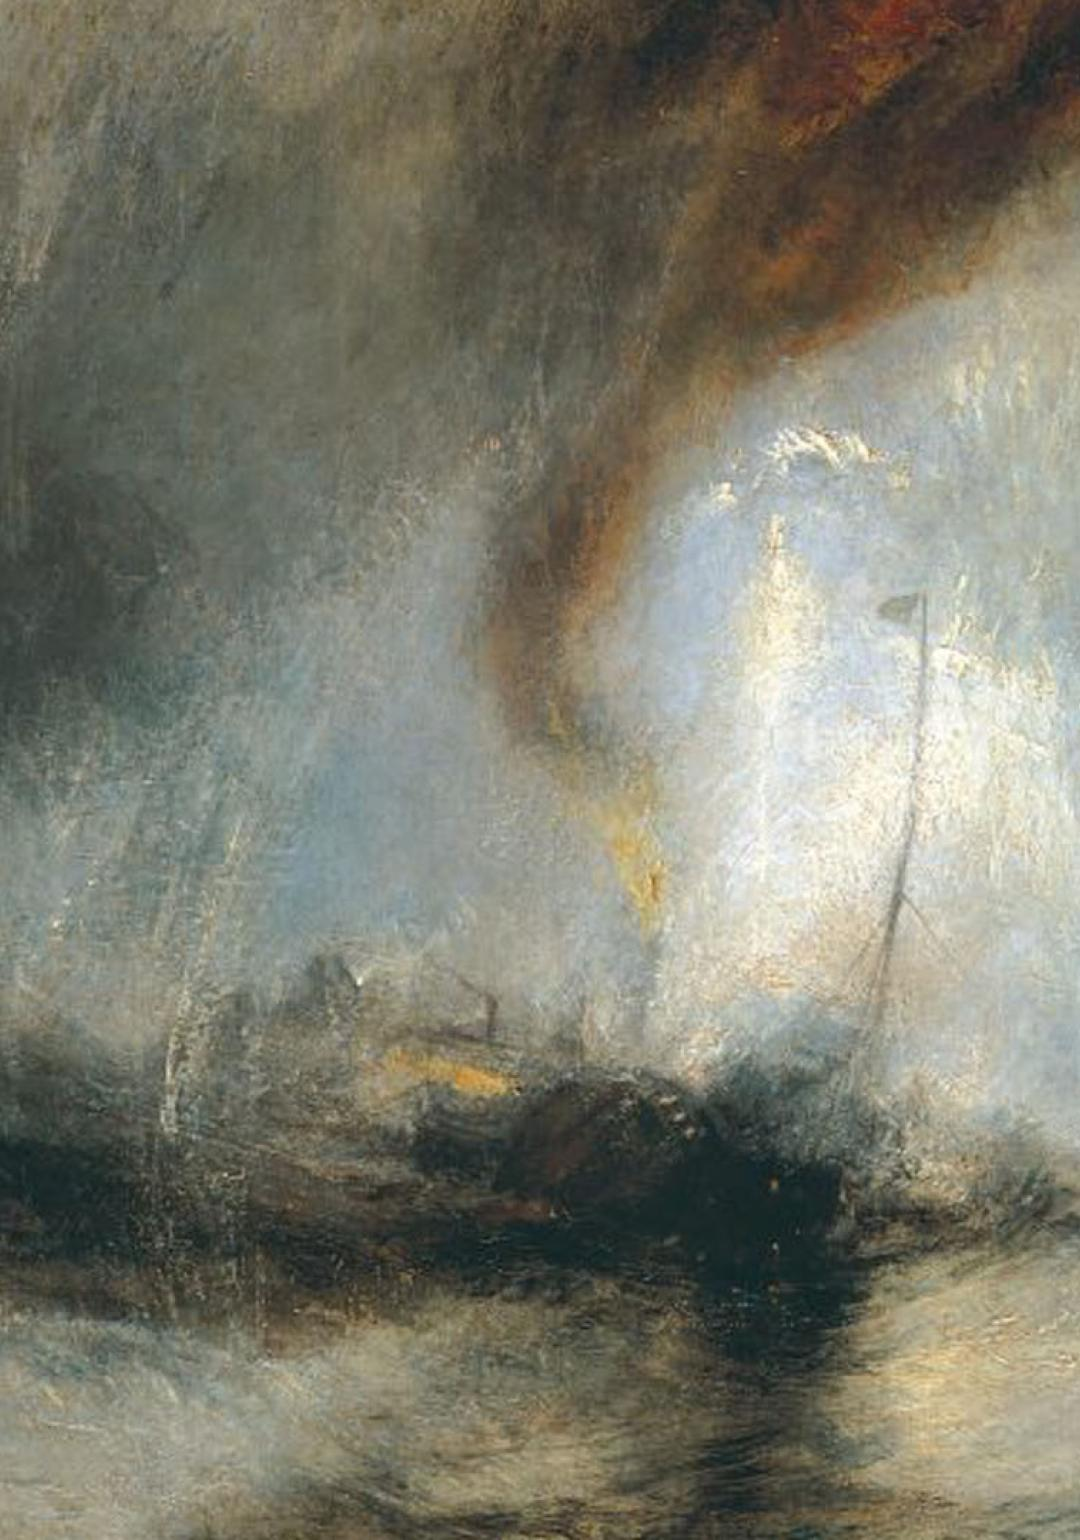 Snow Storm Steam Boat in Harbour Mouth by J. M. W. TURNER, CIRCA 1842